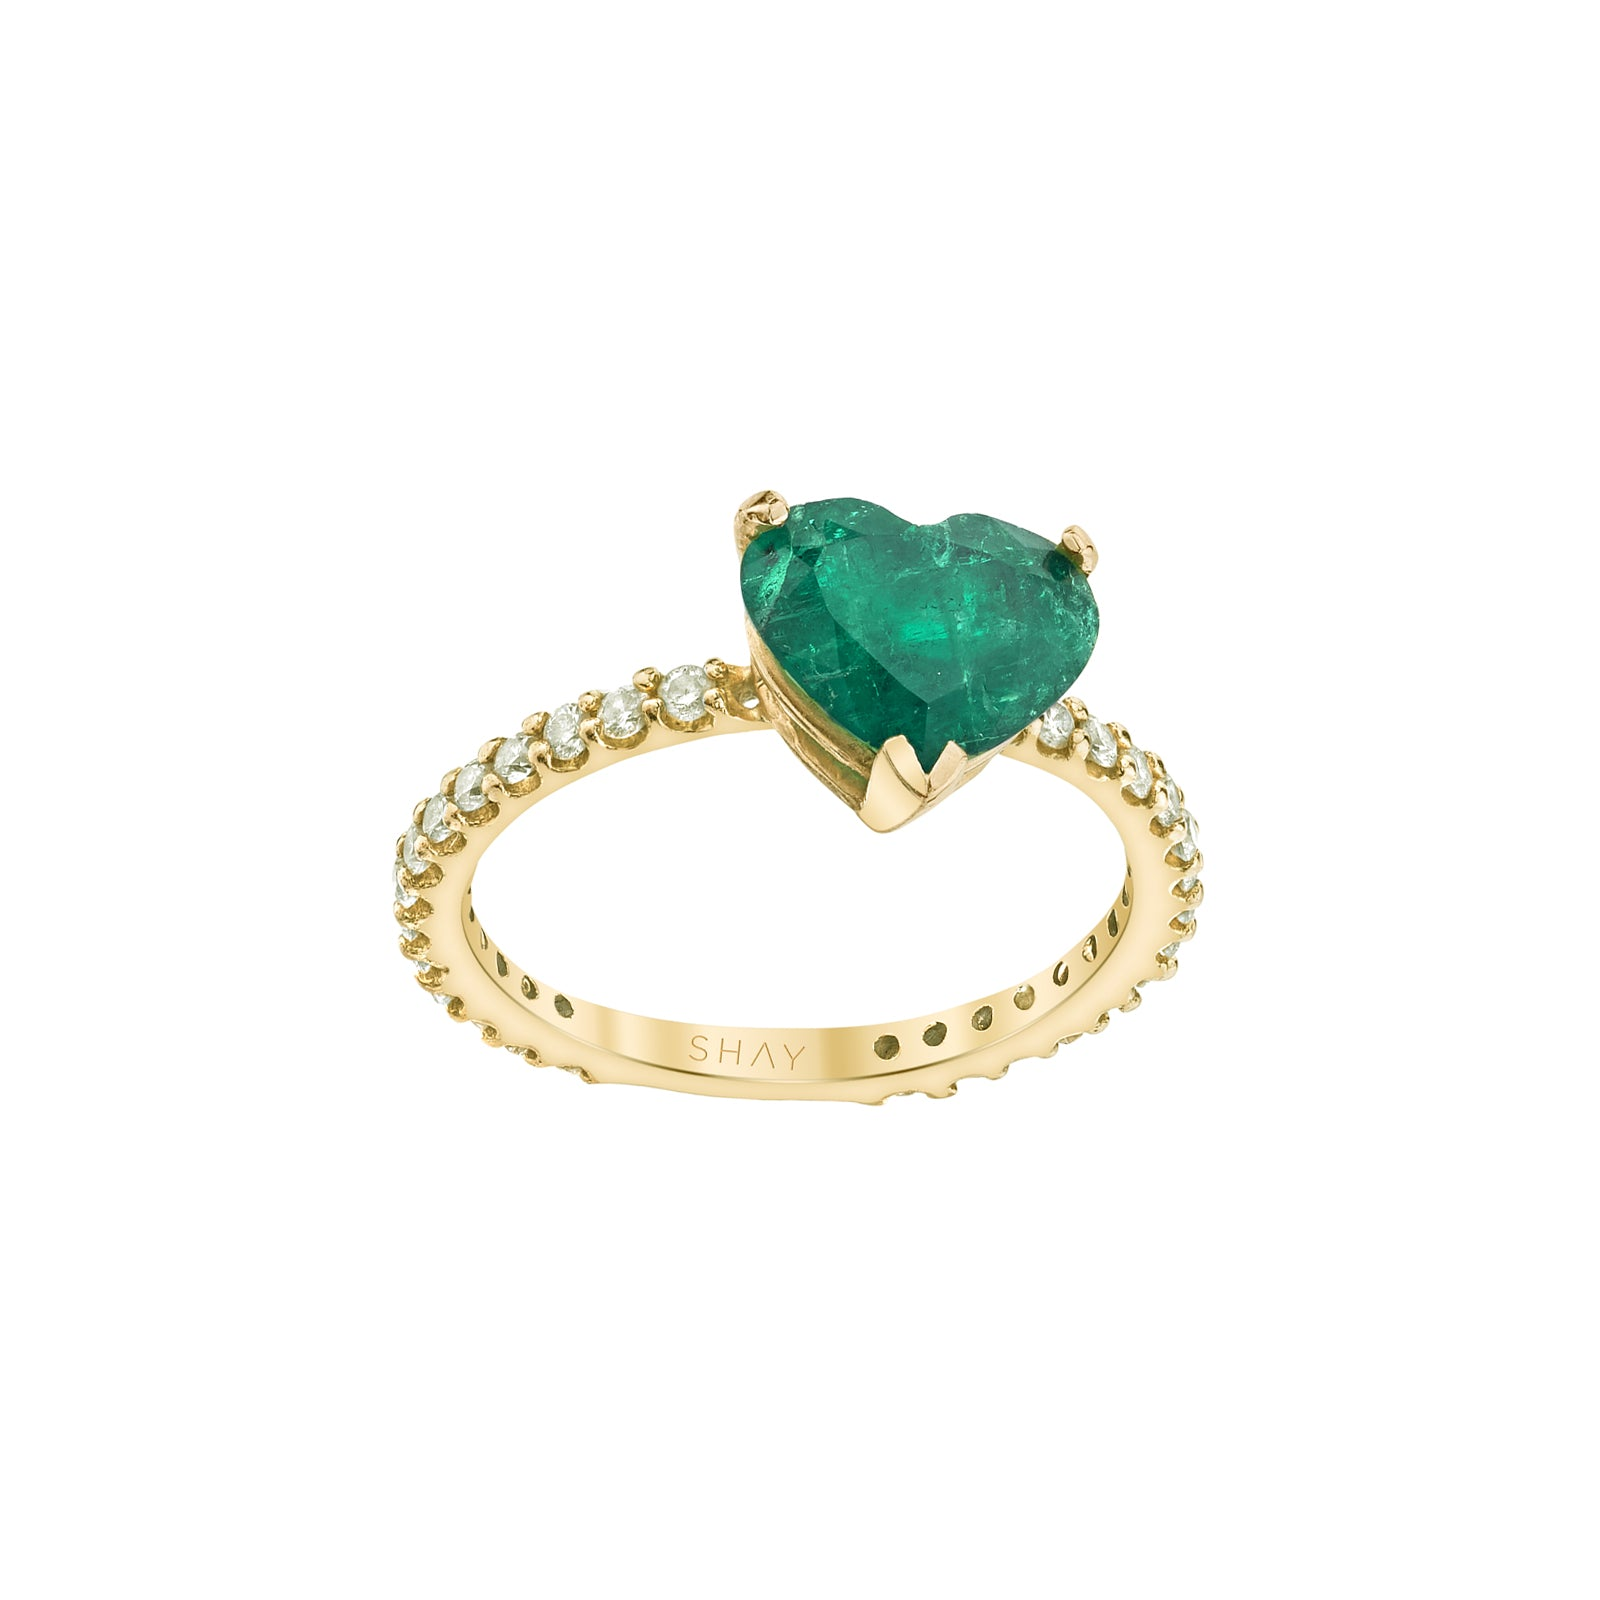 Shay Heart Pinky Ring - Emerald - Rings - Broken English Jewelry